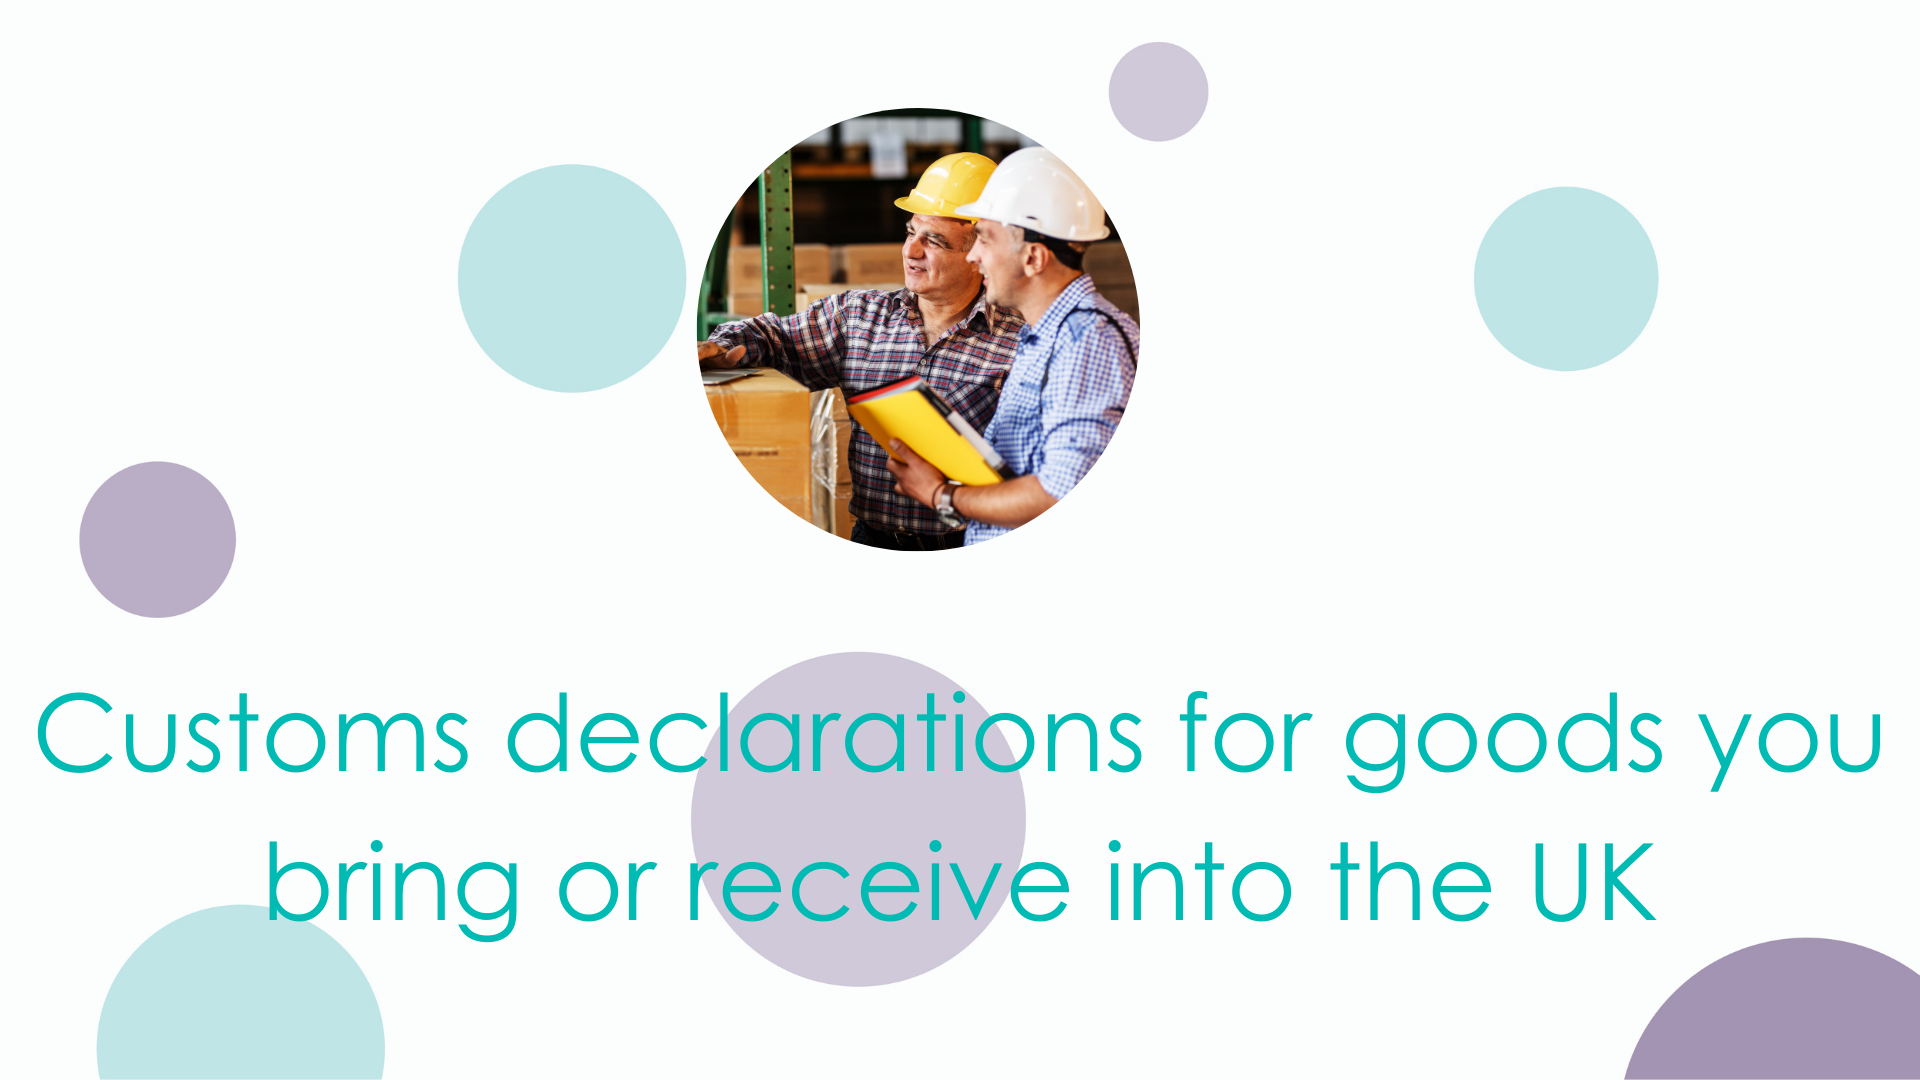 Customs declarations for goods you bring or receive into the UK